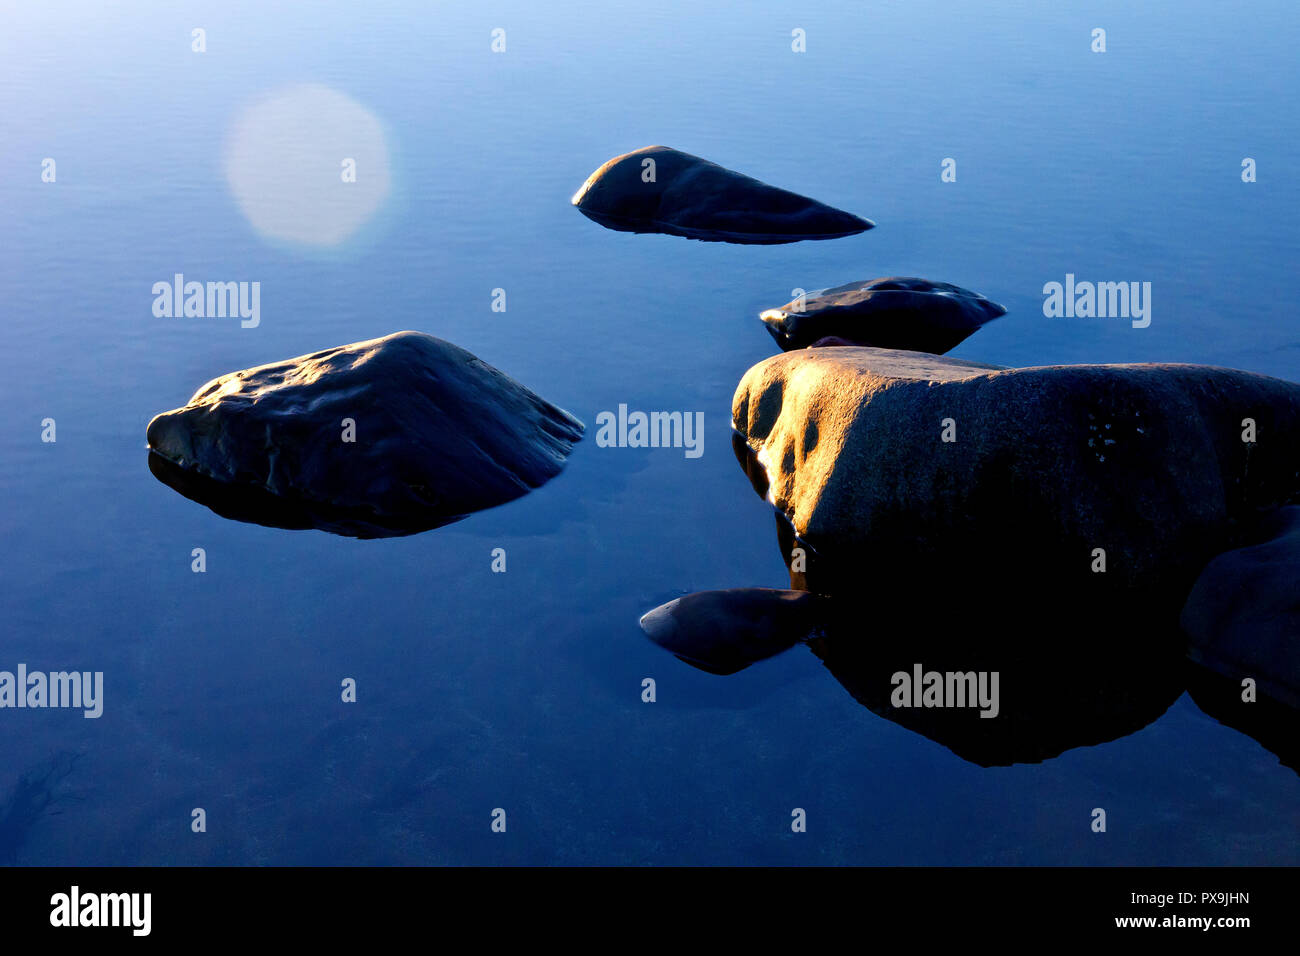 rocks-sitting-in-a-calm-rockpool-on-the-